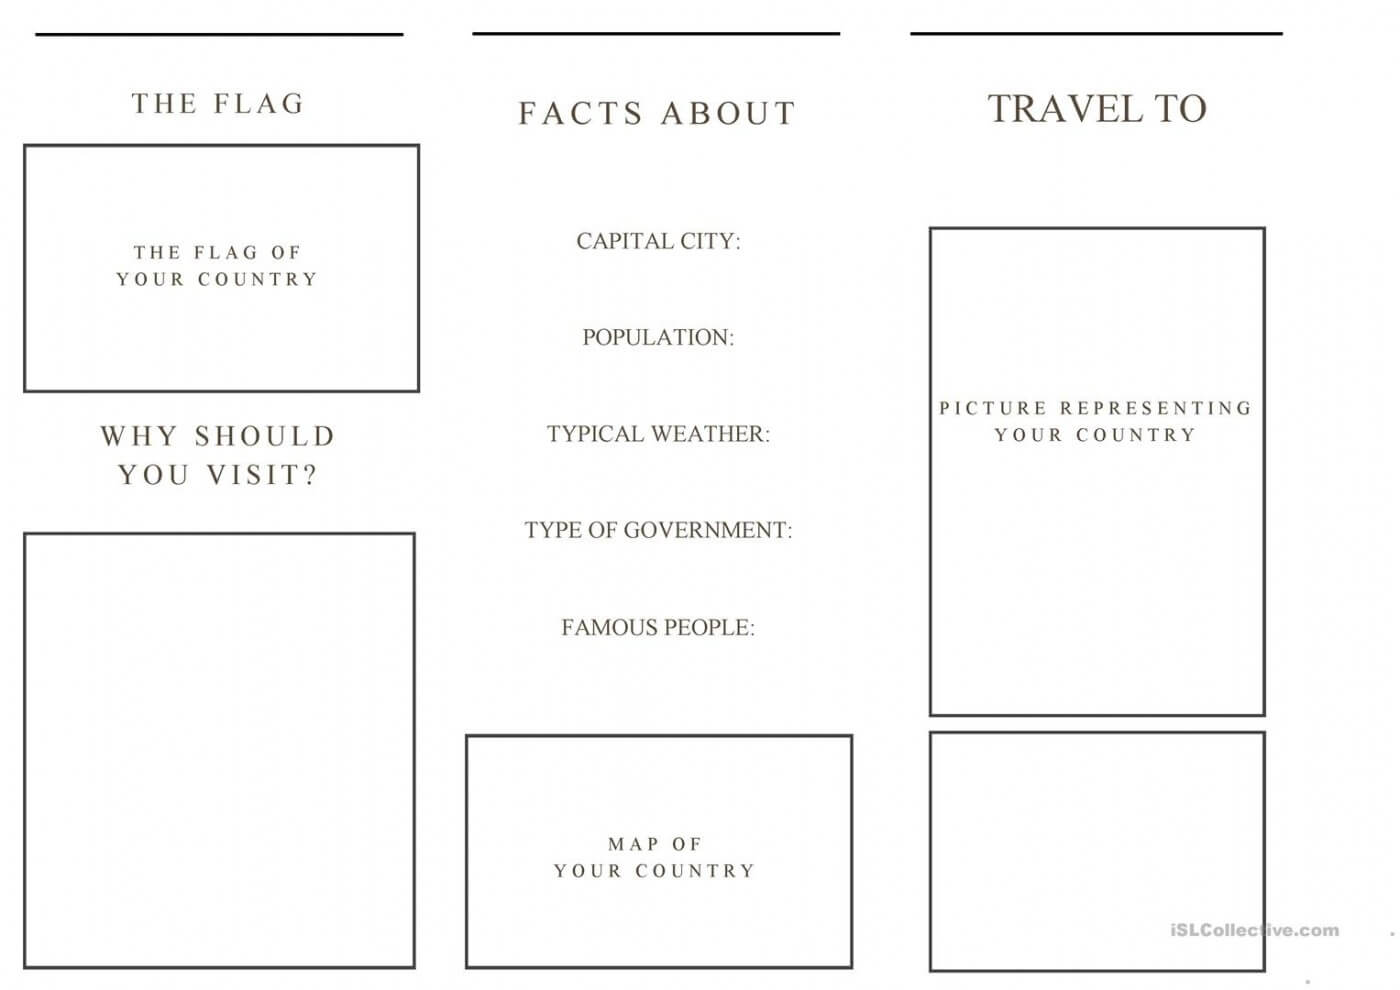 008 Template Ideas Travel Brochure For Students Of Top Blank Pertaining To Travel Brochure Template For Students